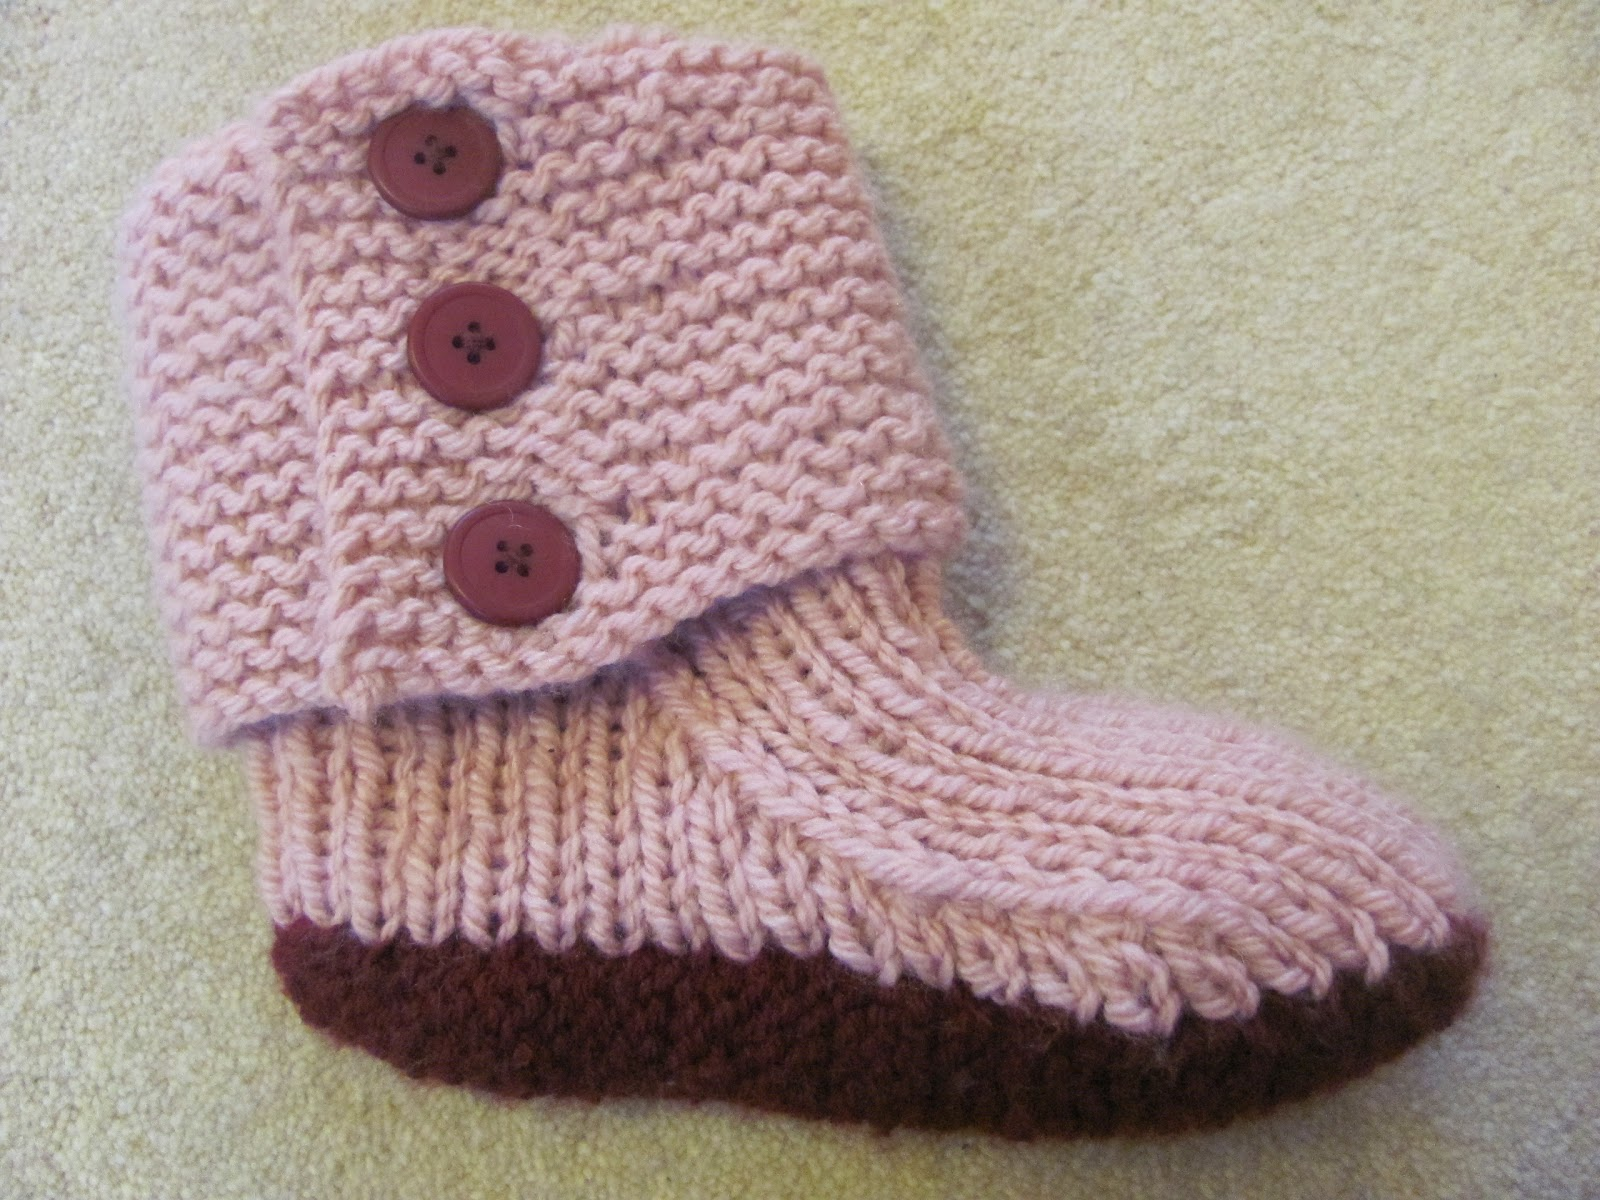 Free Knitting Patterns For Slippers And Socks : BED SOCK KNITTING PATTERNS